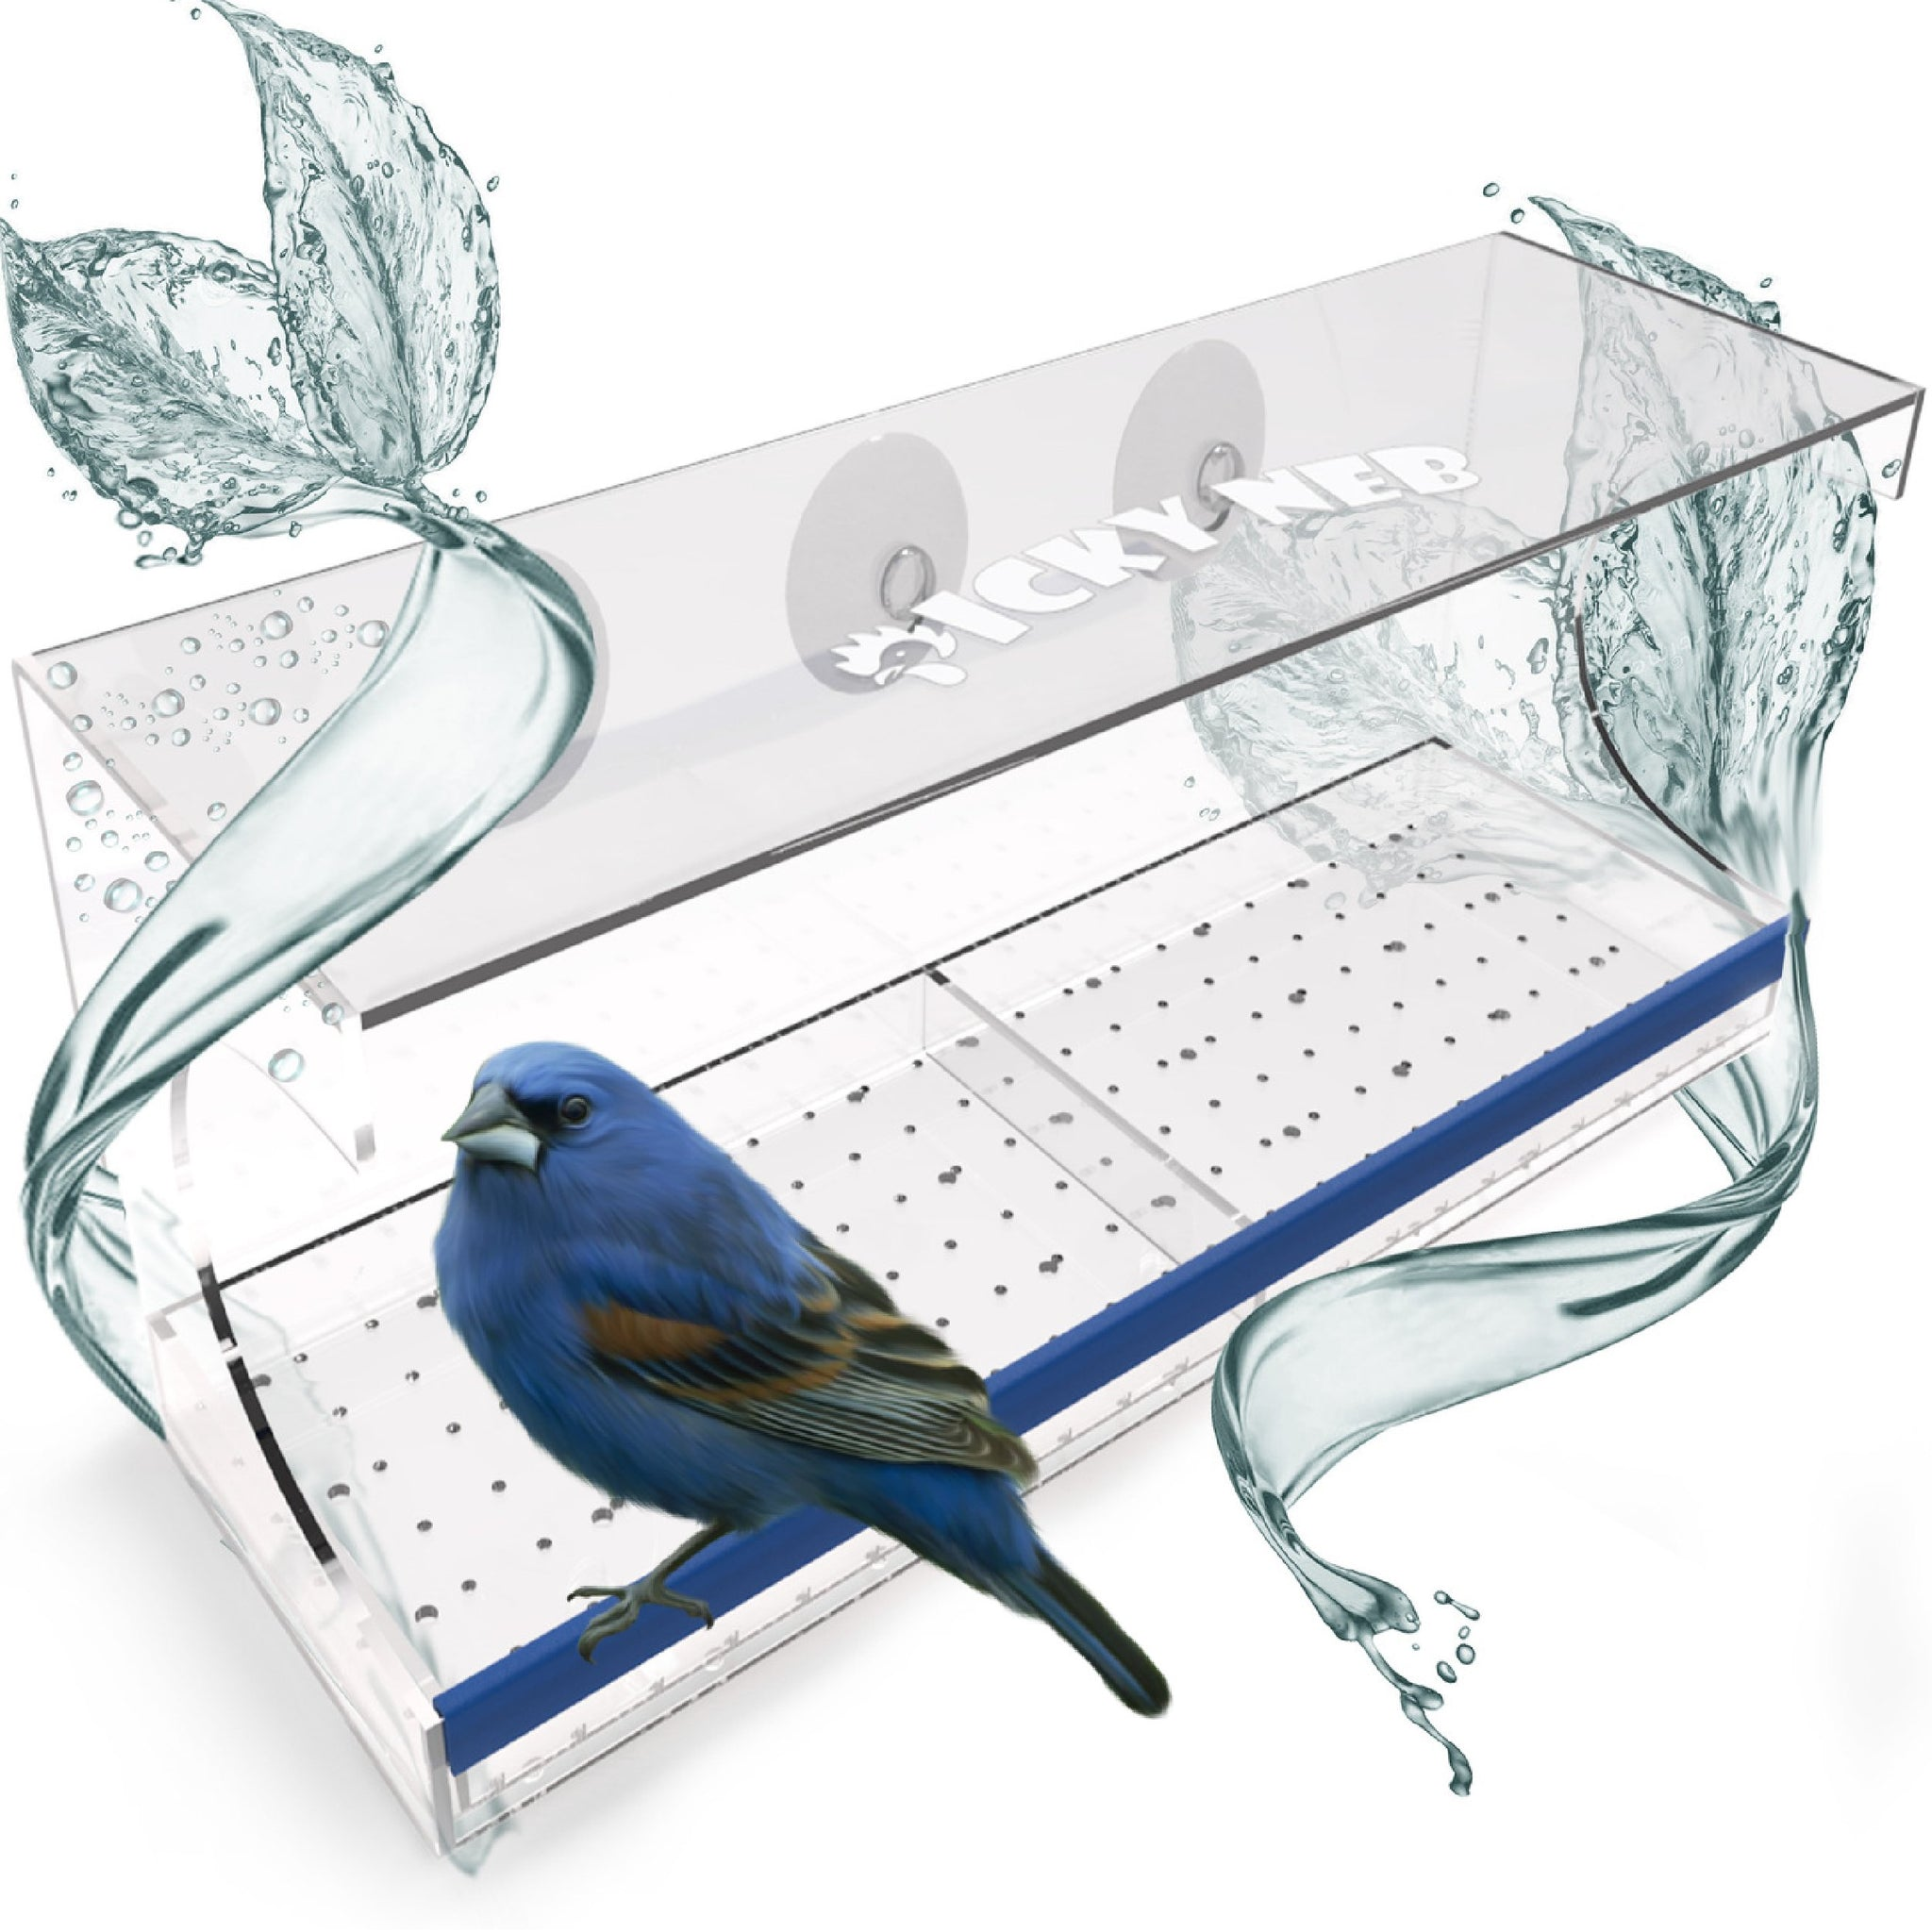 feeder perkypet and inspiring suction cups inspiration on bird strong acrylic with wild cup window ideas tv sasg amazing of gazebo as our seen